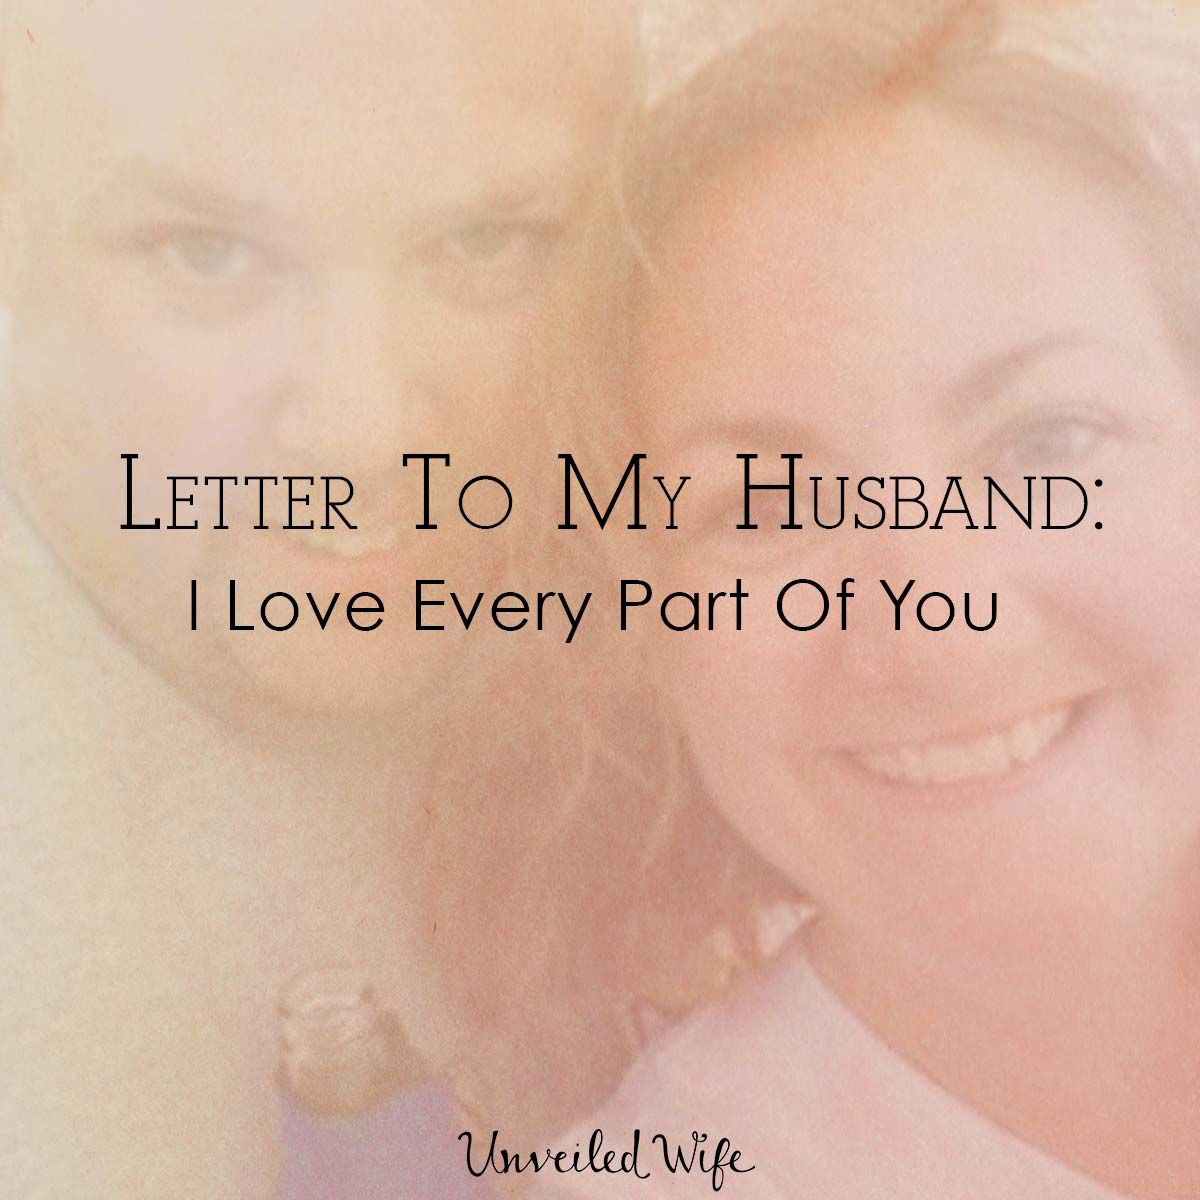 Letter to My Husband Beautiful Letter to My Husband I Believe In Us